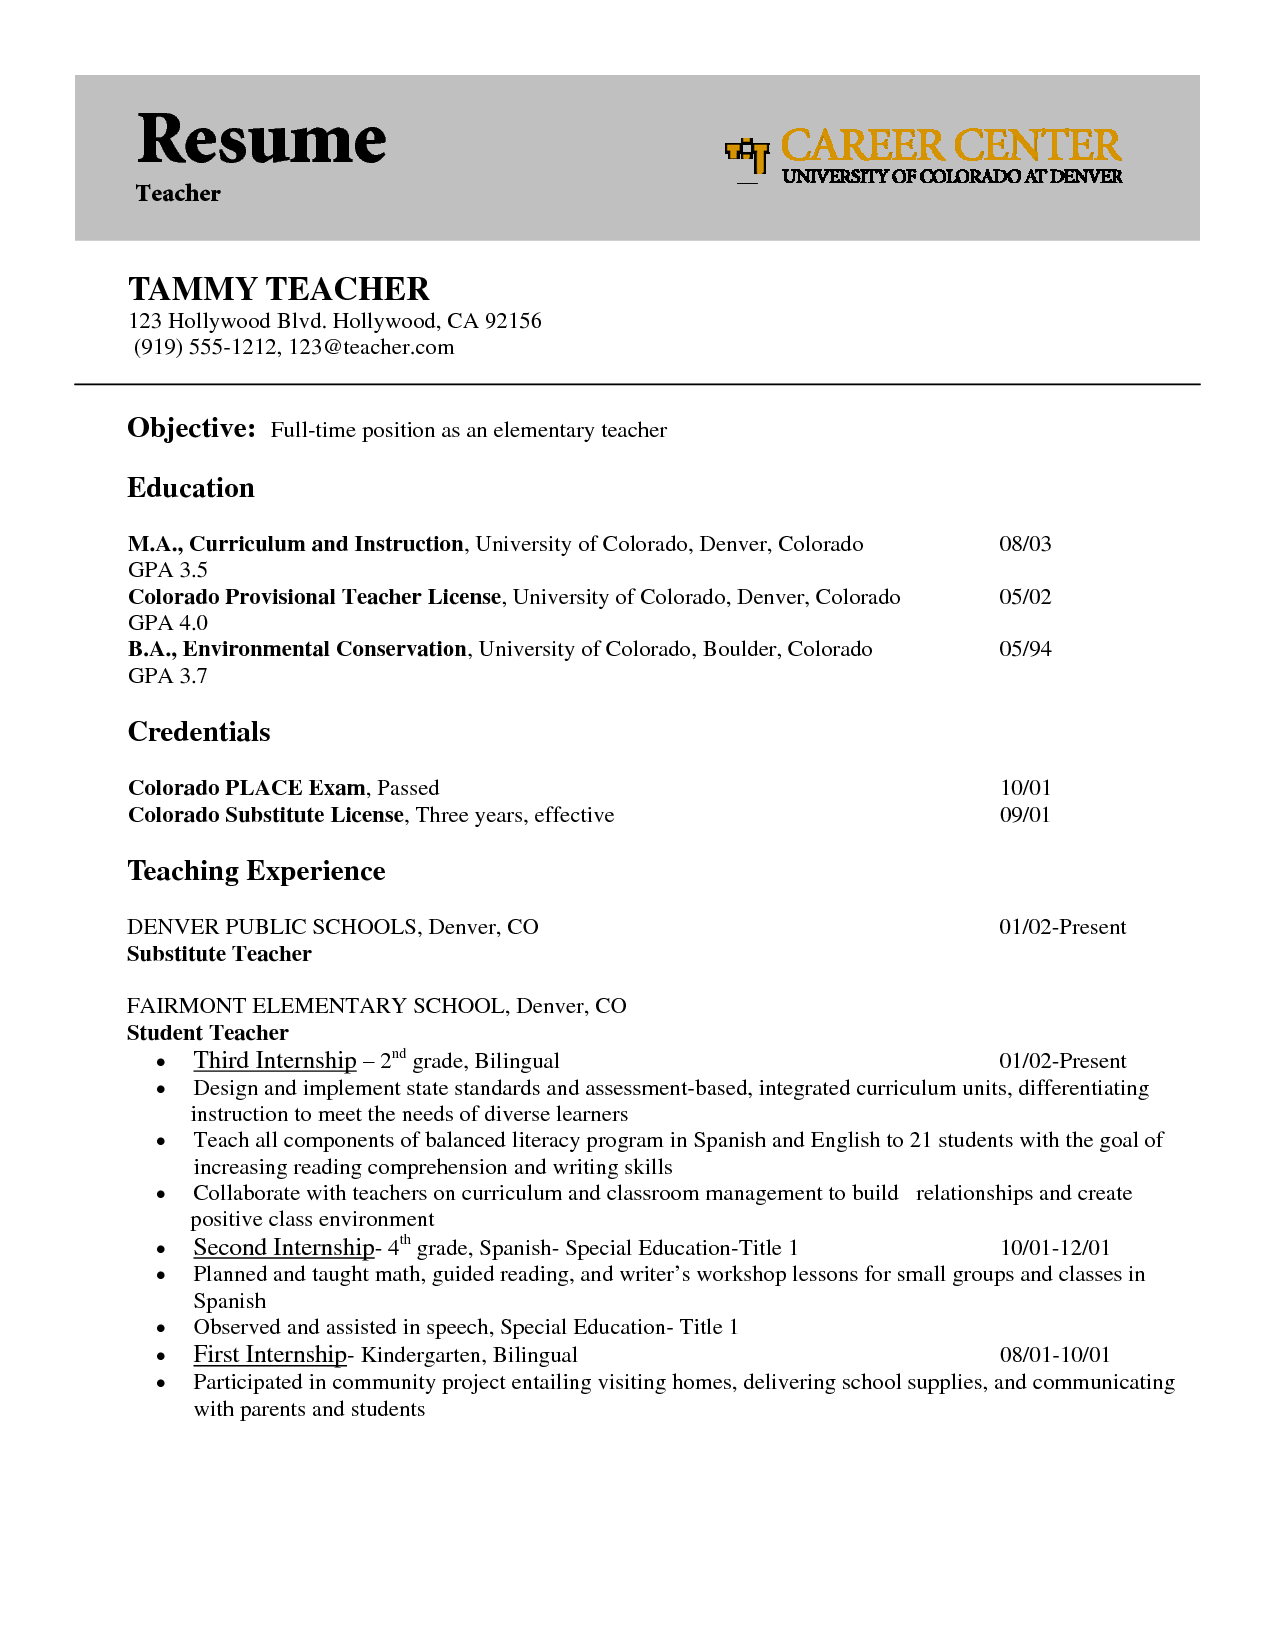 Teacher Resume Examples Fascinating Teacher Cover Letters With Experiencejob Hunting Write A Great Design Inspiration